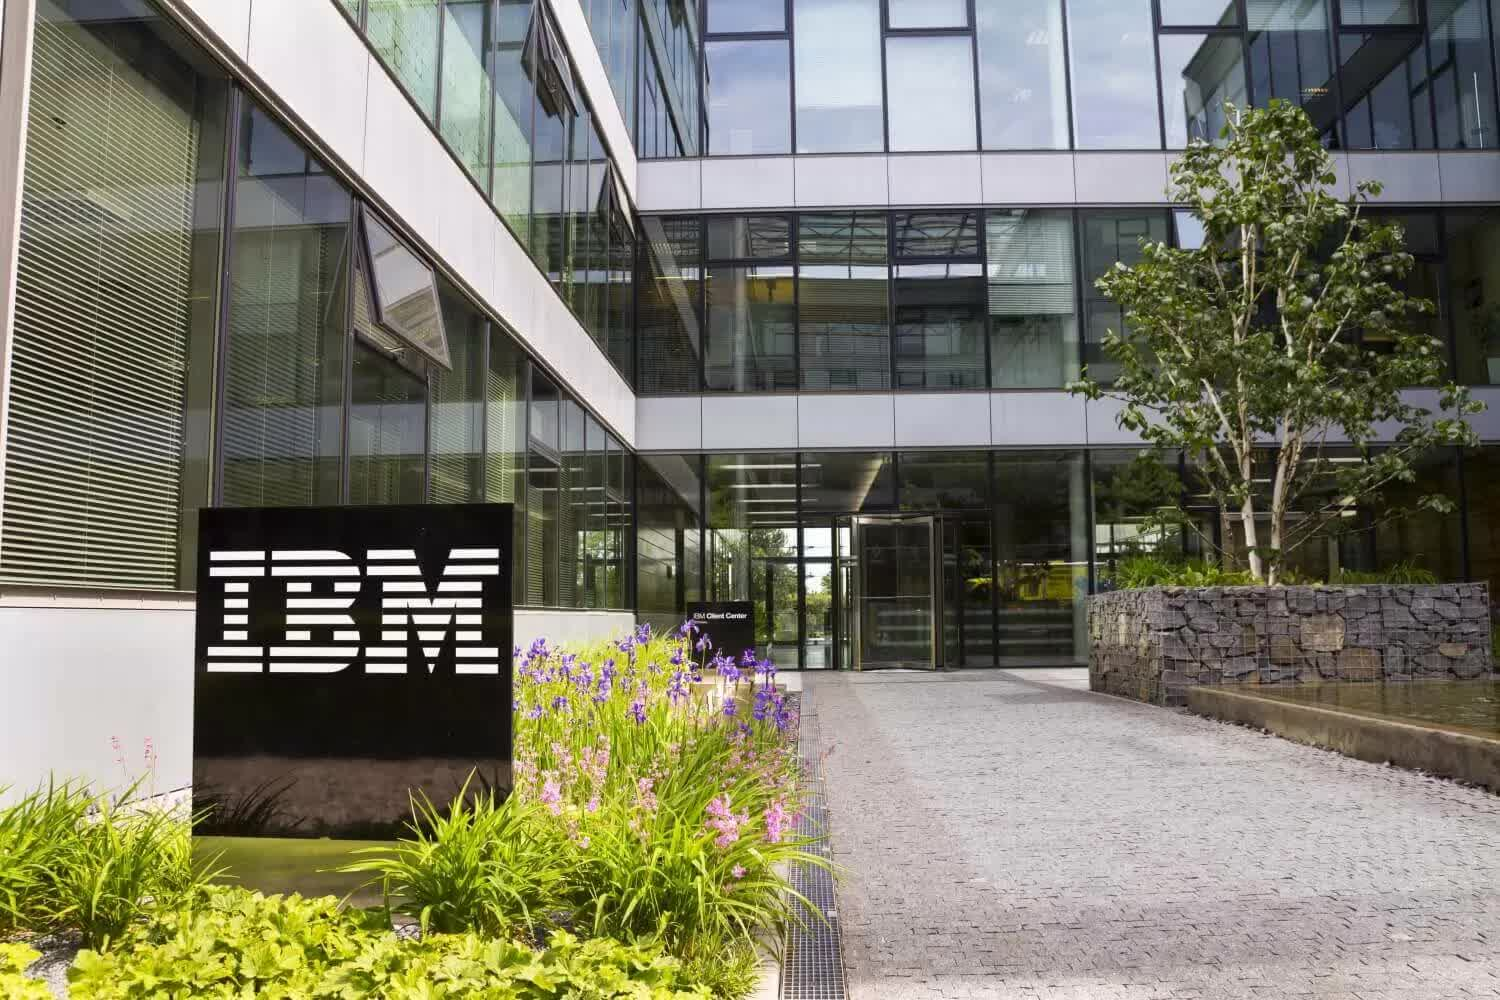 IBM said to be planning 10,000 job cuts ahead of strategic spinoff